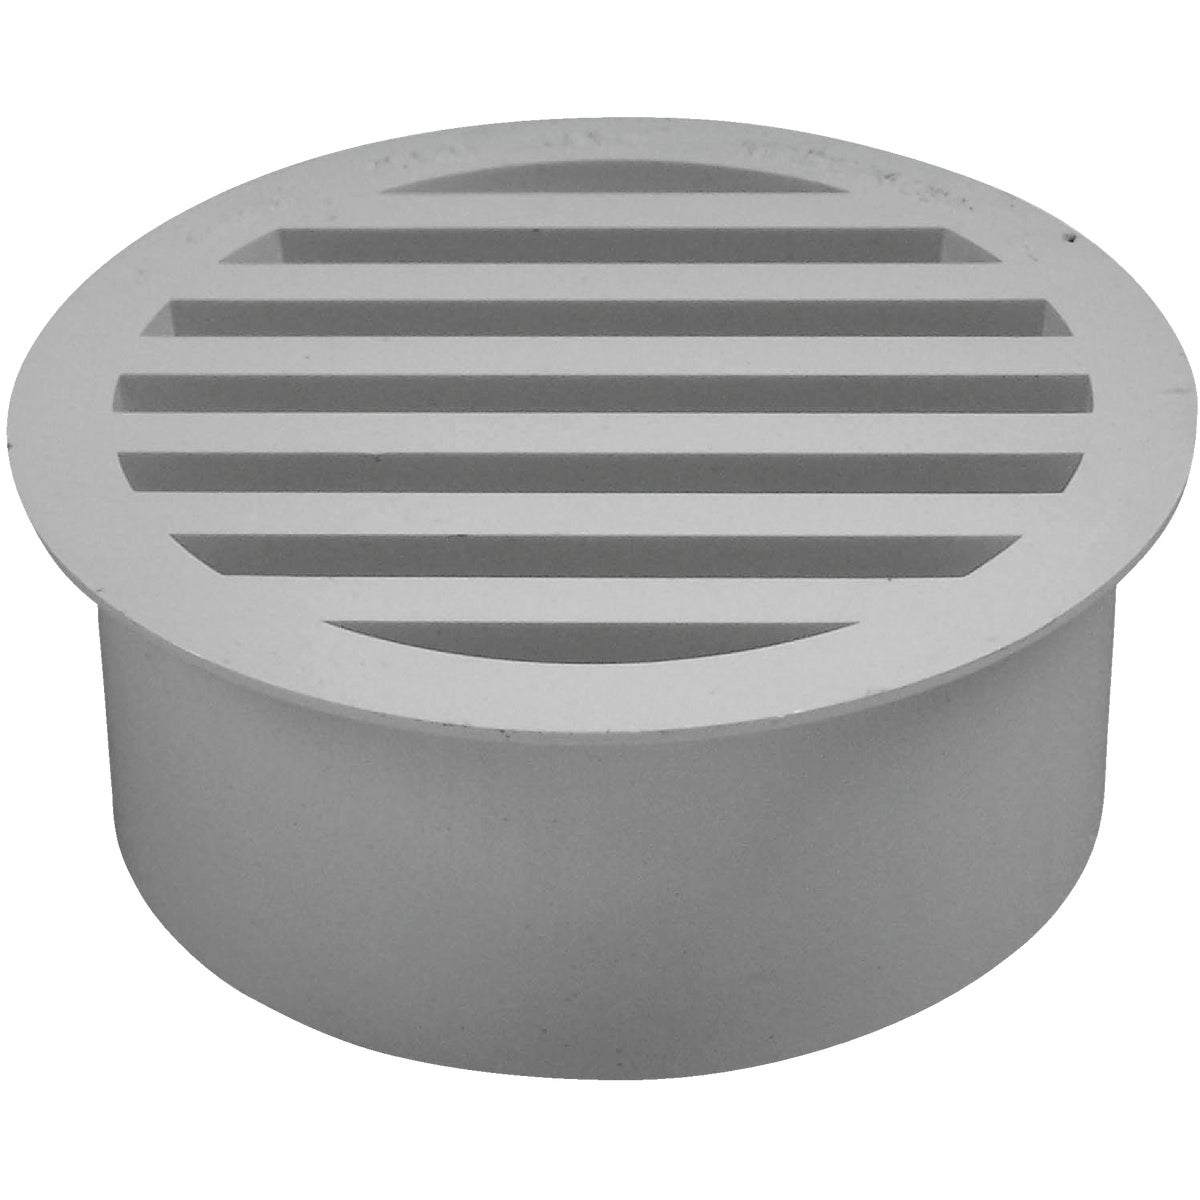 "3""PVC-DWV FLOOR STRAINER - 79130 by Genova Inc  Pvc Dwv"